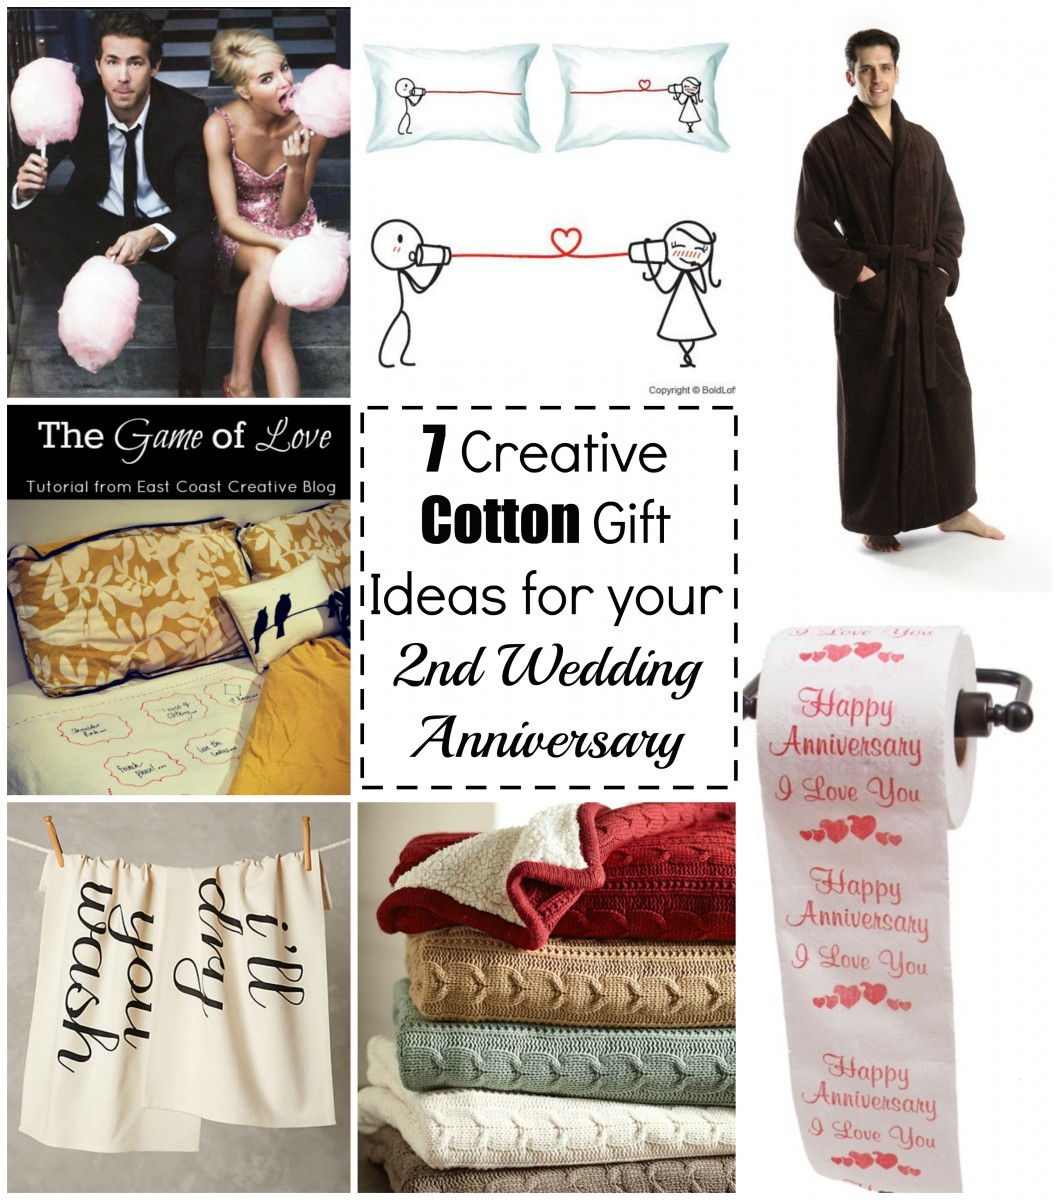 Wedding Anniversary Gifts For Husband Ideas: 7 Cotton Gift Ideas For Your 2nd Wedding Anniversary